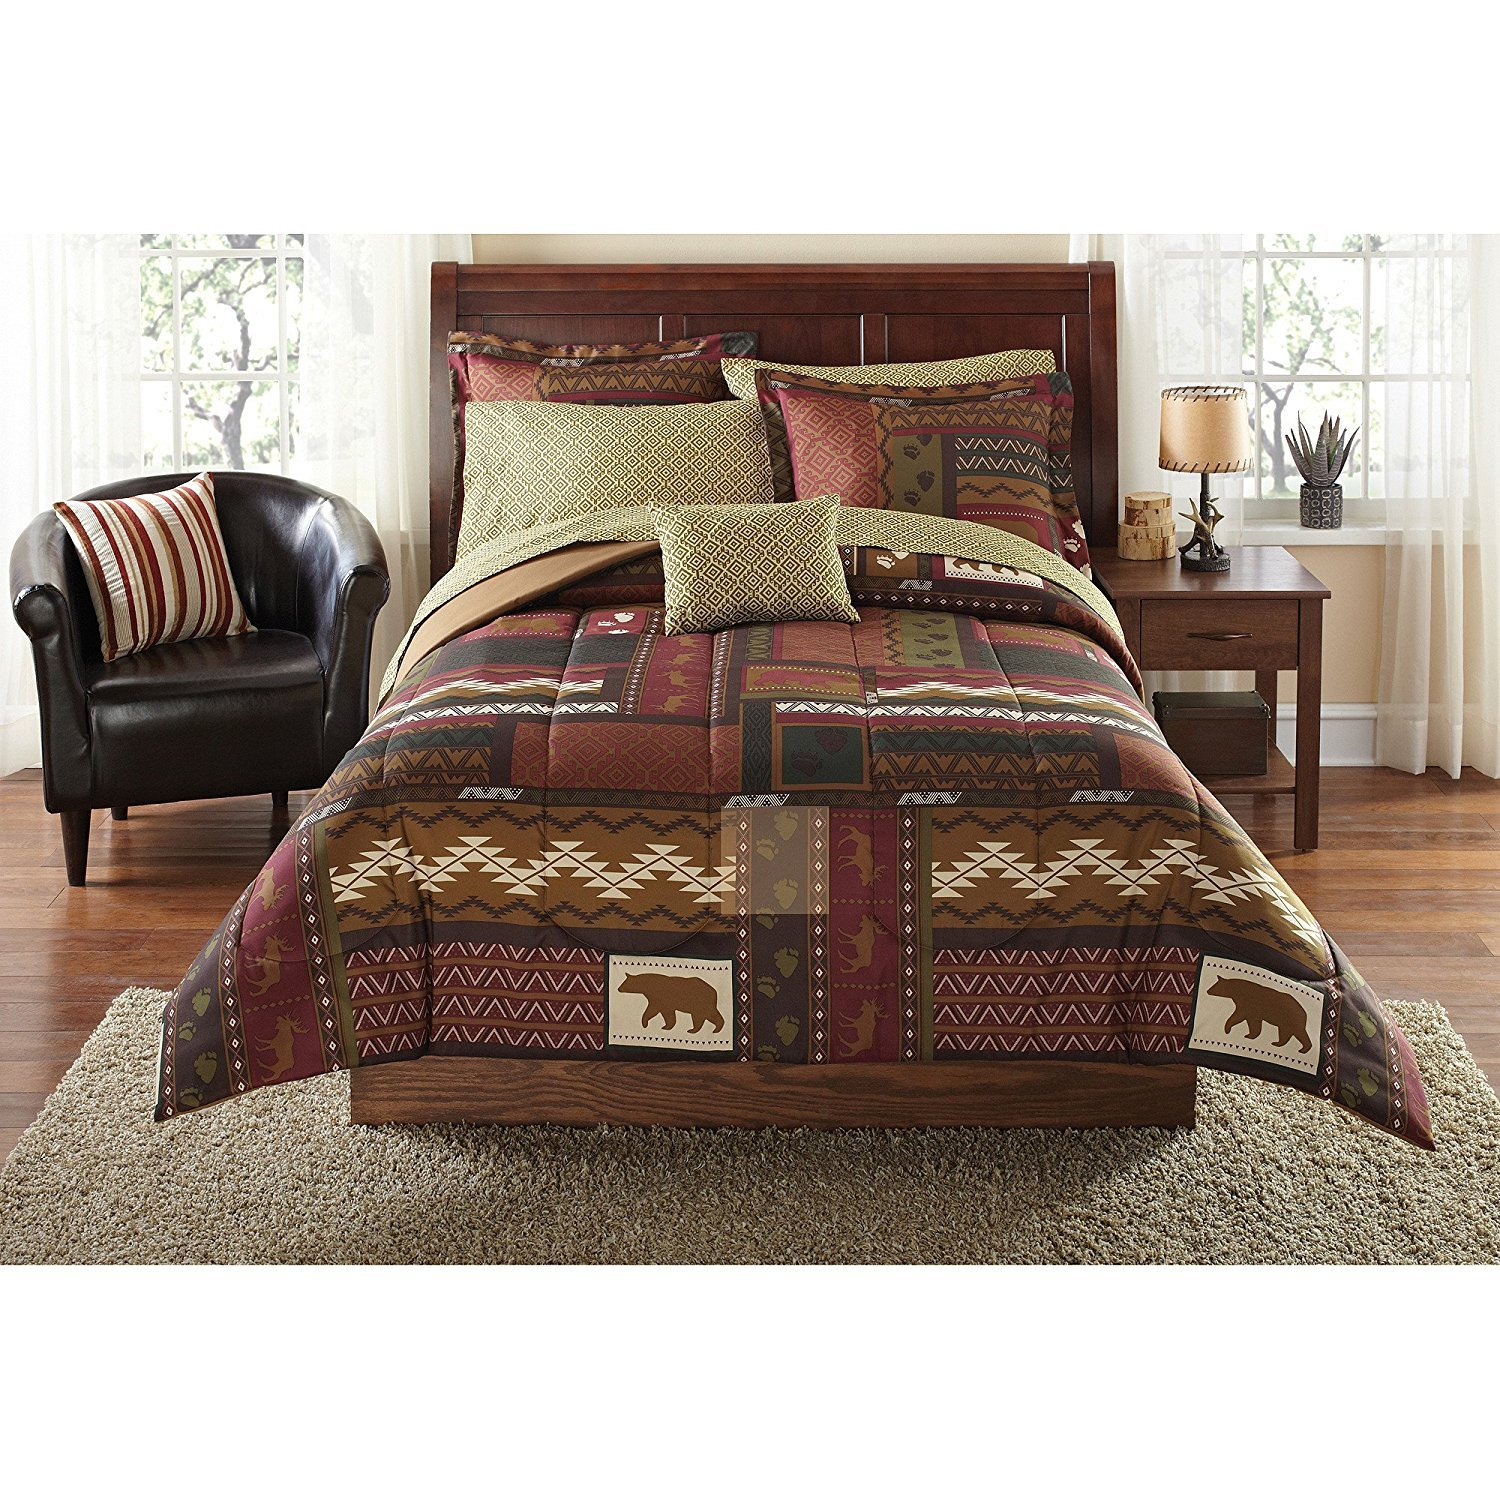 MS 8pc Color Patchwork Geometric Moose Printed Comforter Set Twin/Twin XL, Dark Brown Golden Woods Rustic Lodge Cabin Animal Wildlife Bear Footprint Features Kids Bedding Teen Bedroom Polyester